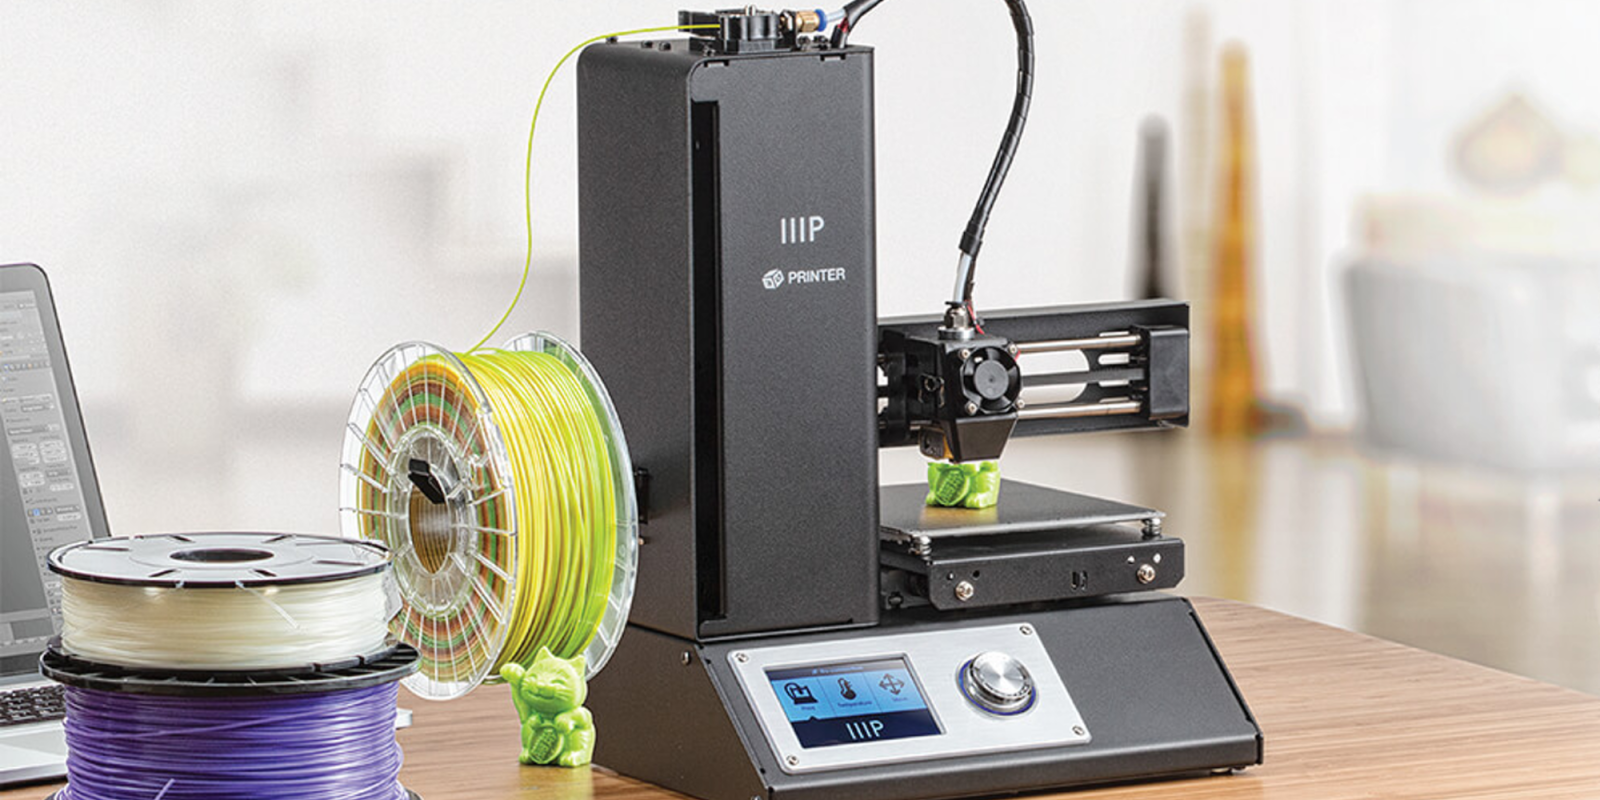 Monoprice's MP Select Mini 3D Printer has never been lower at $100 (Open-box, Reg. $170)